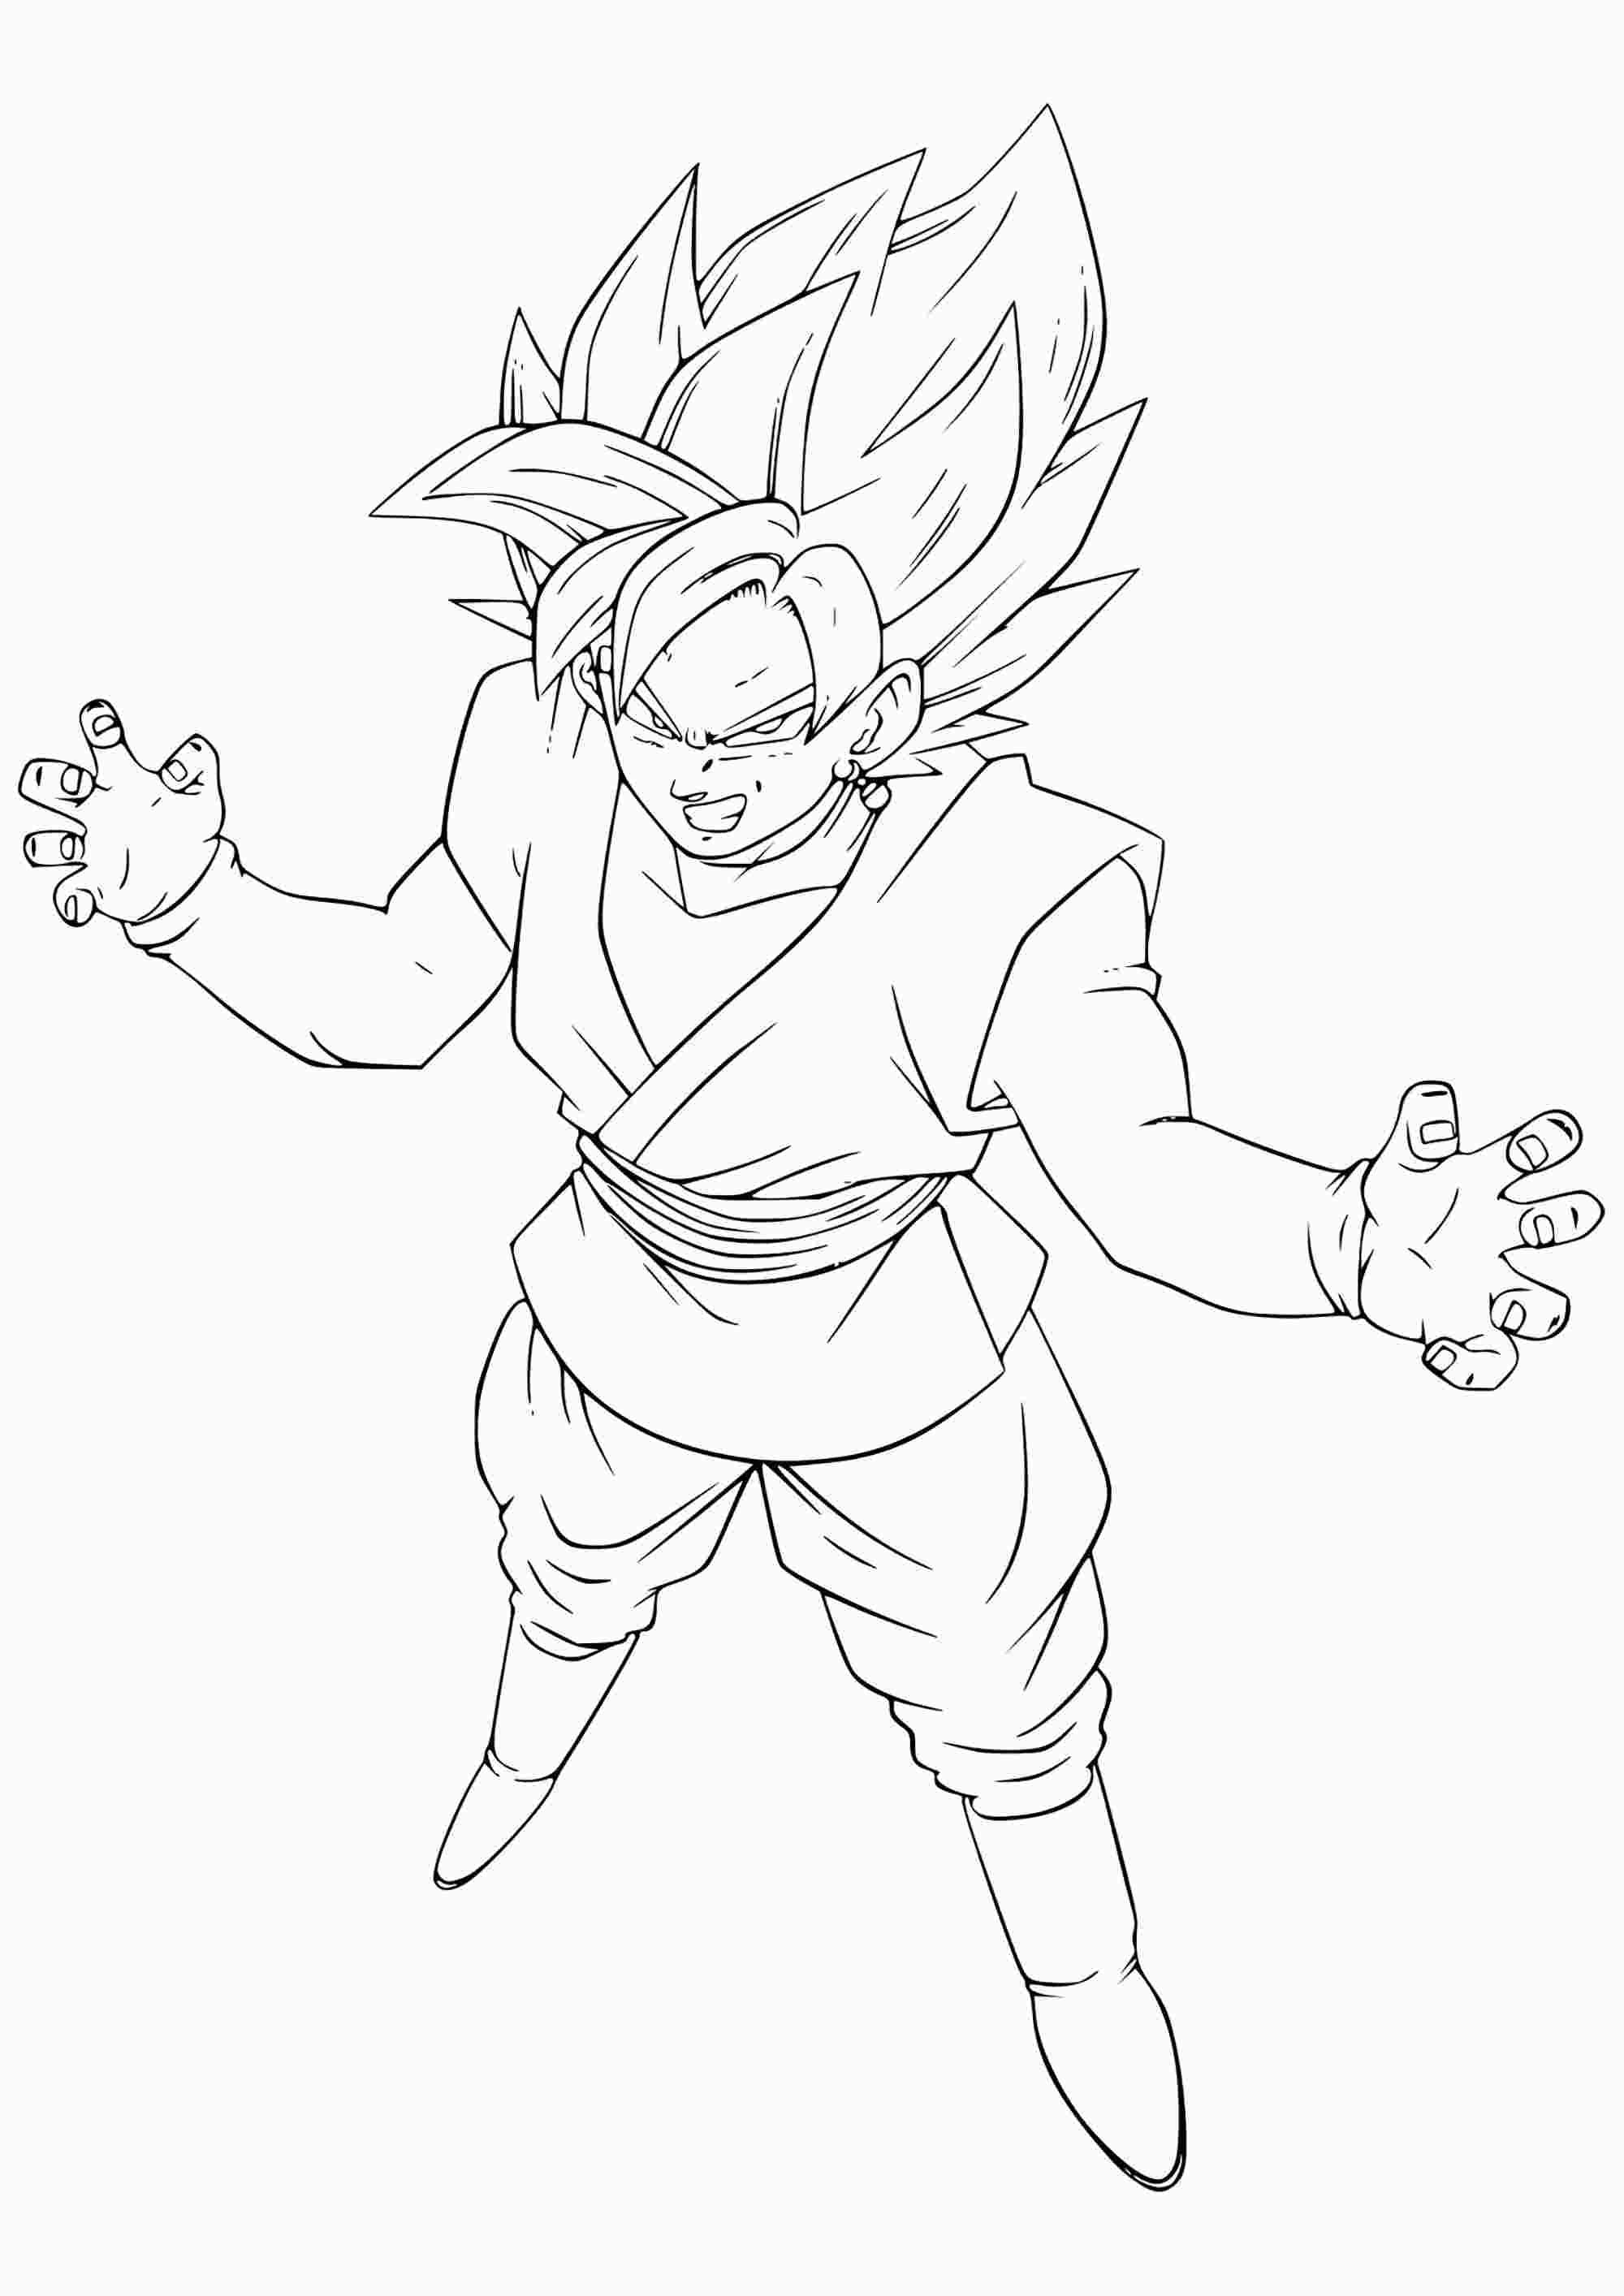 Goku Black Coloring Pages Super Coloring Pages Monster Coloring